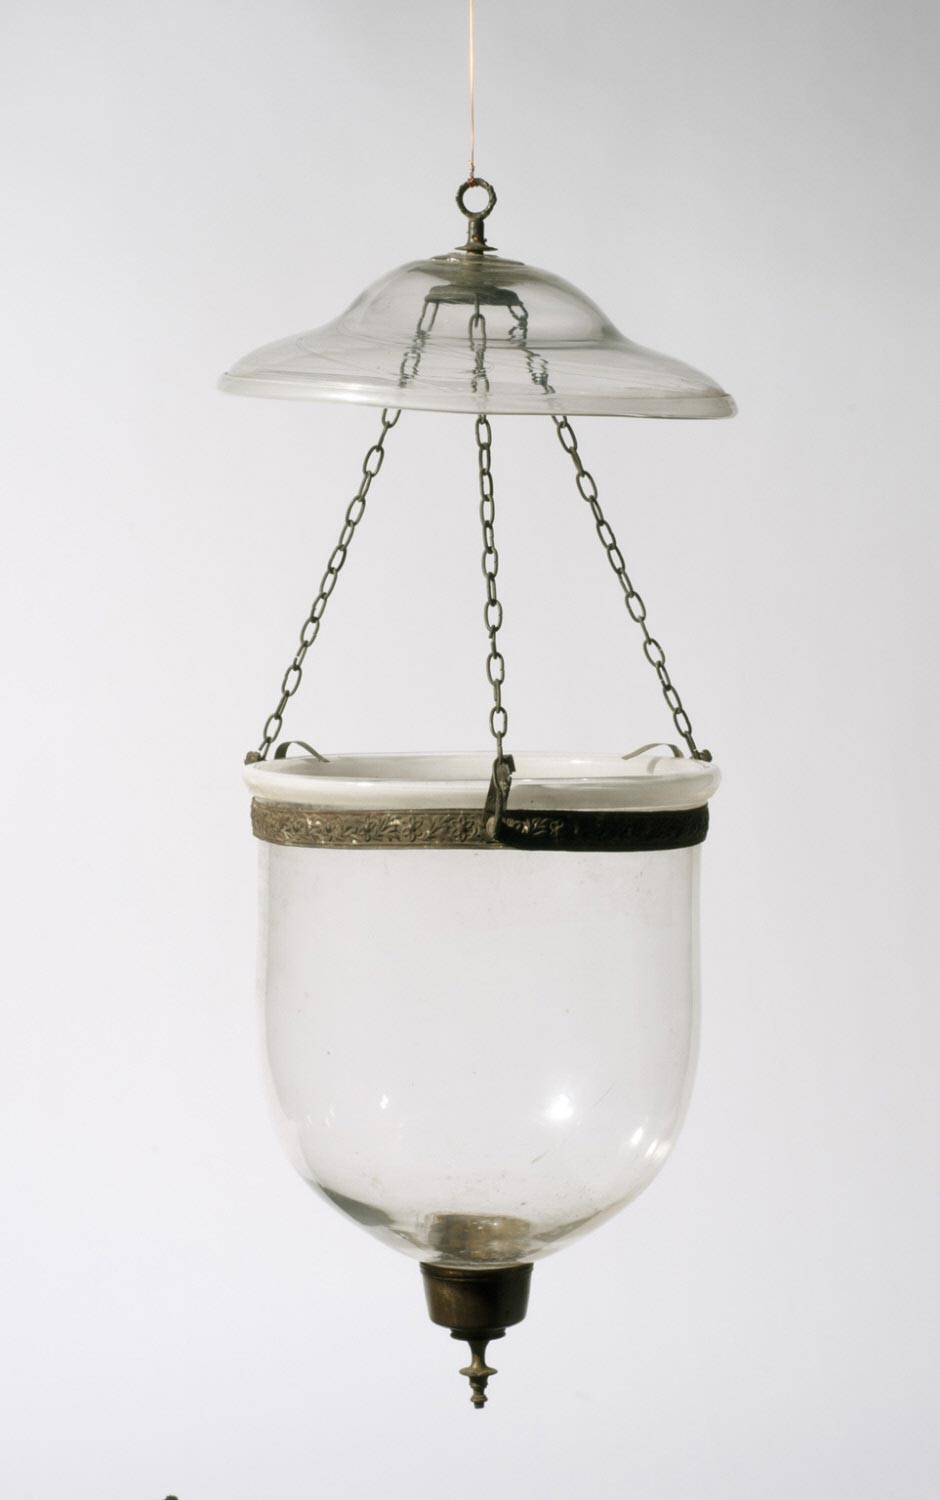 Bell-shaped Hanging Lamp with Separate Glass Lid